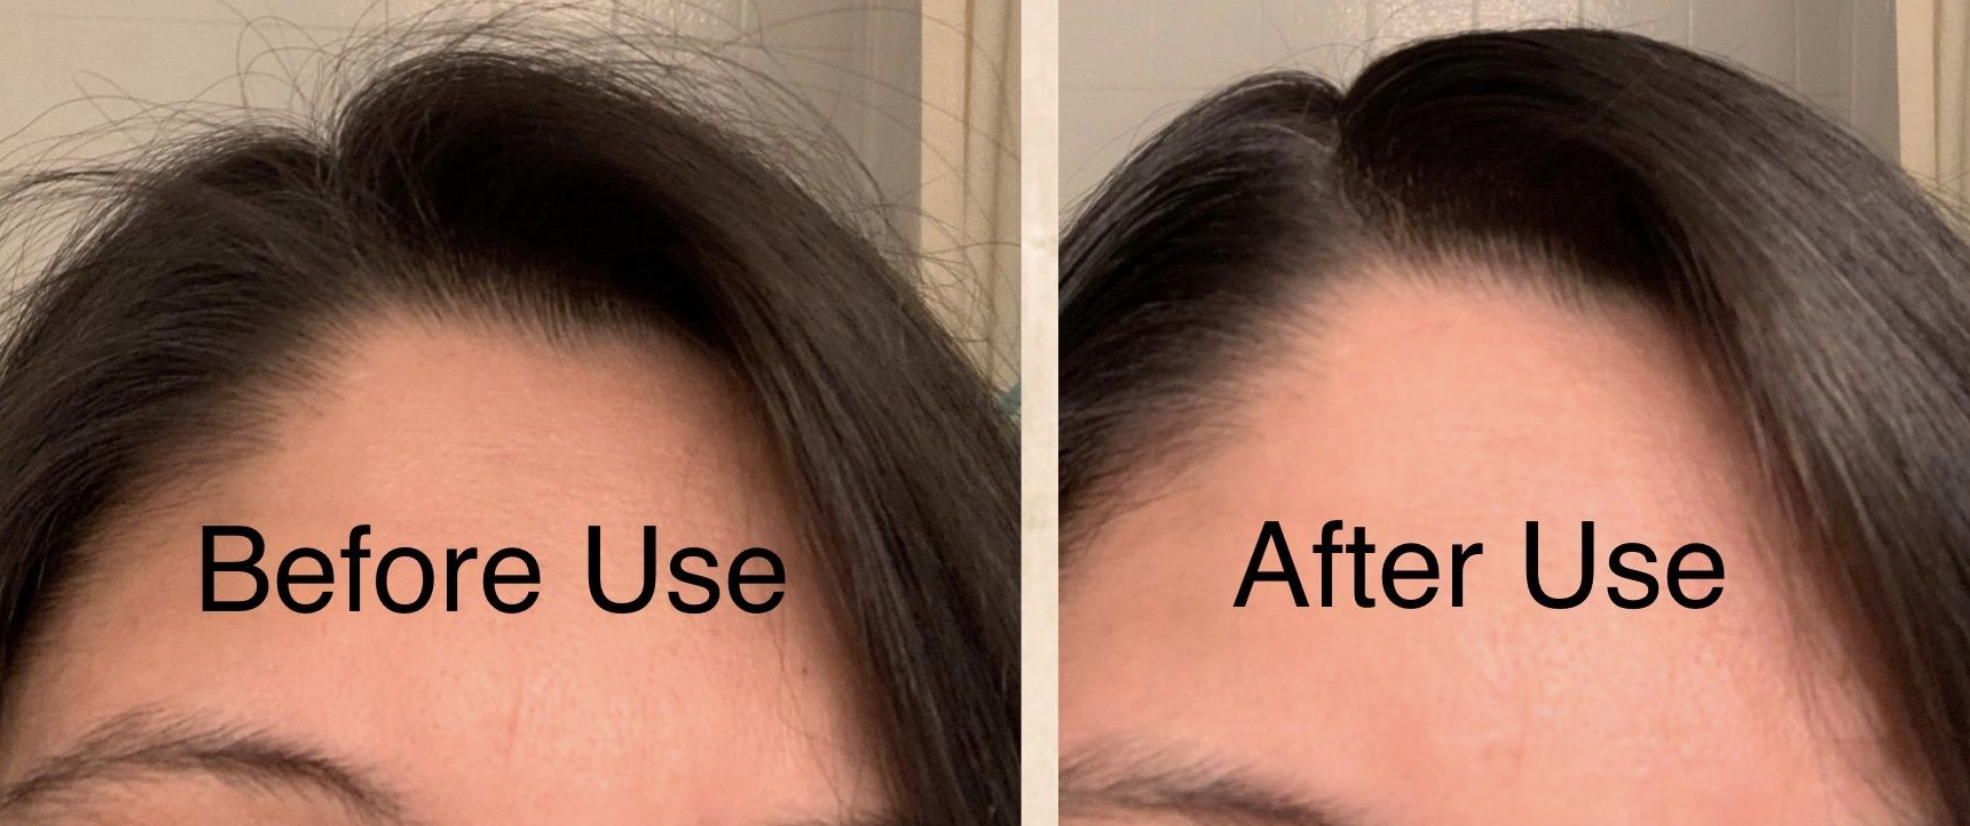 "before and after photo of reviewer with hair fly-aways on the left labeled ""before use"" and no visible flyaways on the right labeled ""after use"""